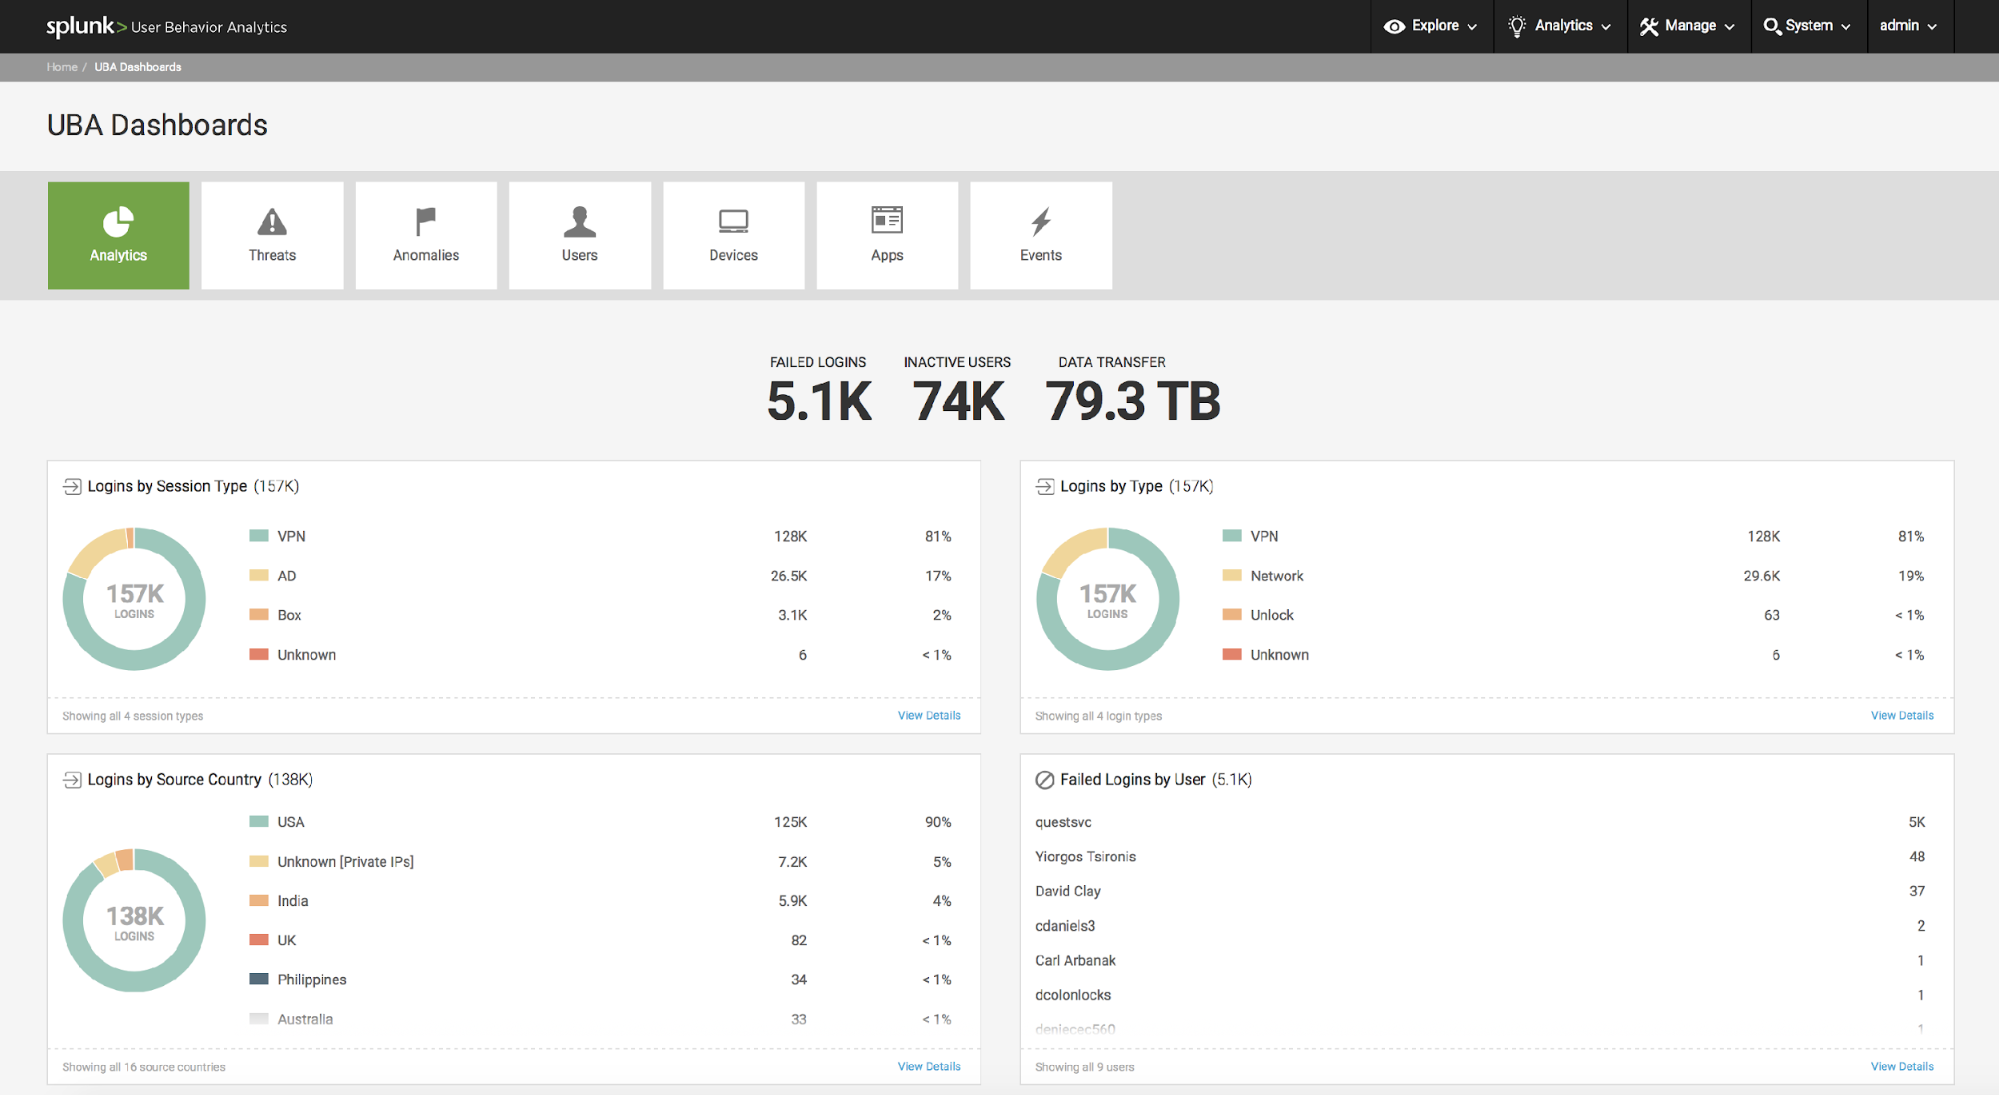 Splunk User Behavior Analytics